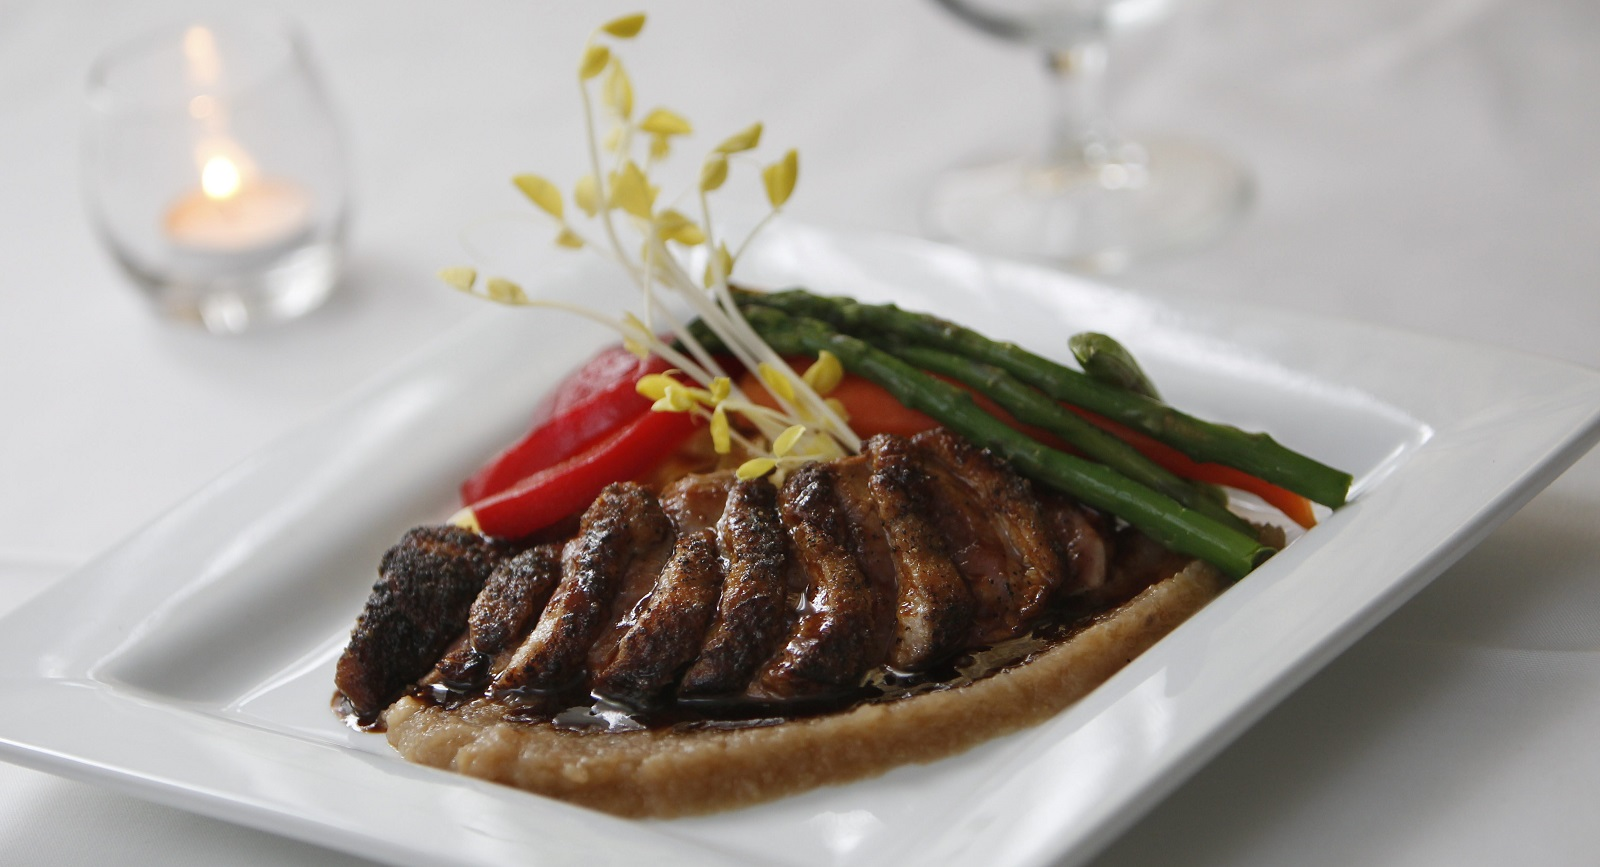 Crisp duck breast with house pasta, roasted pear puree and raspberry coulis from Daniels restaurant.  (Sharon Cantillon/Buffalo News file photo)